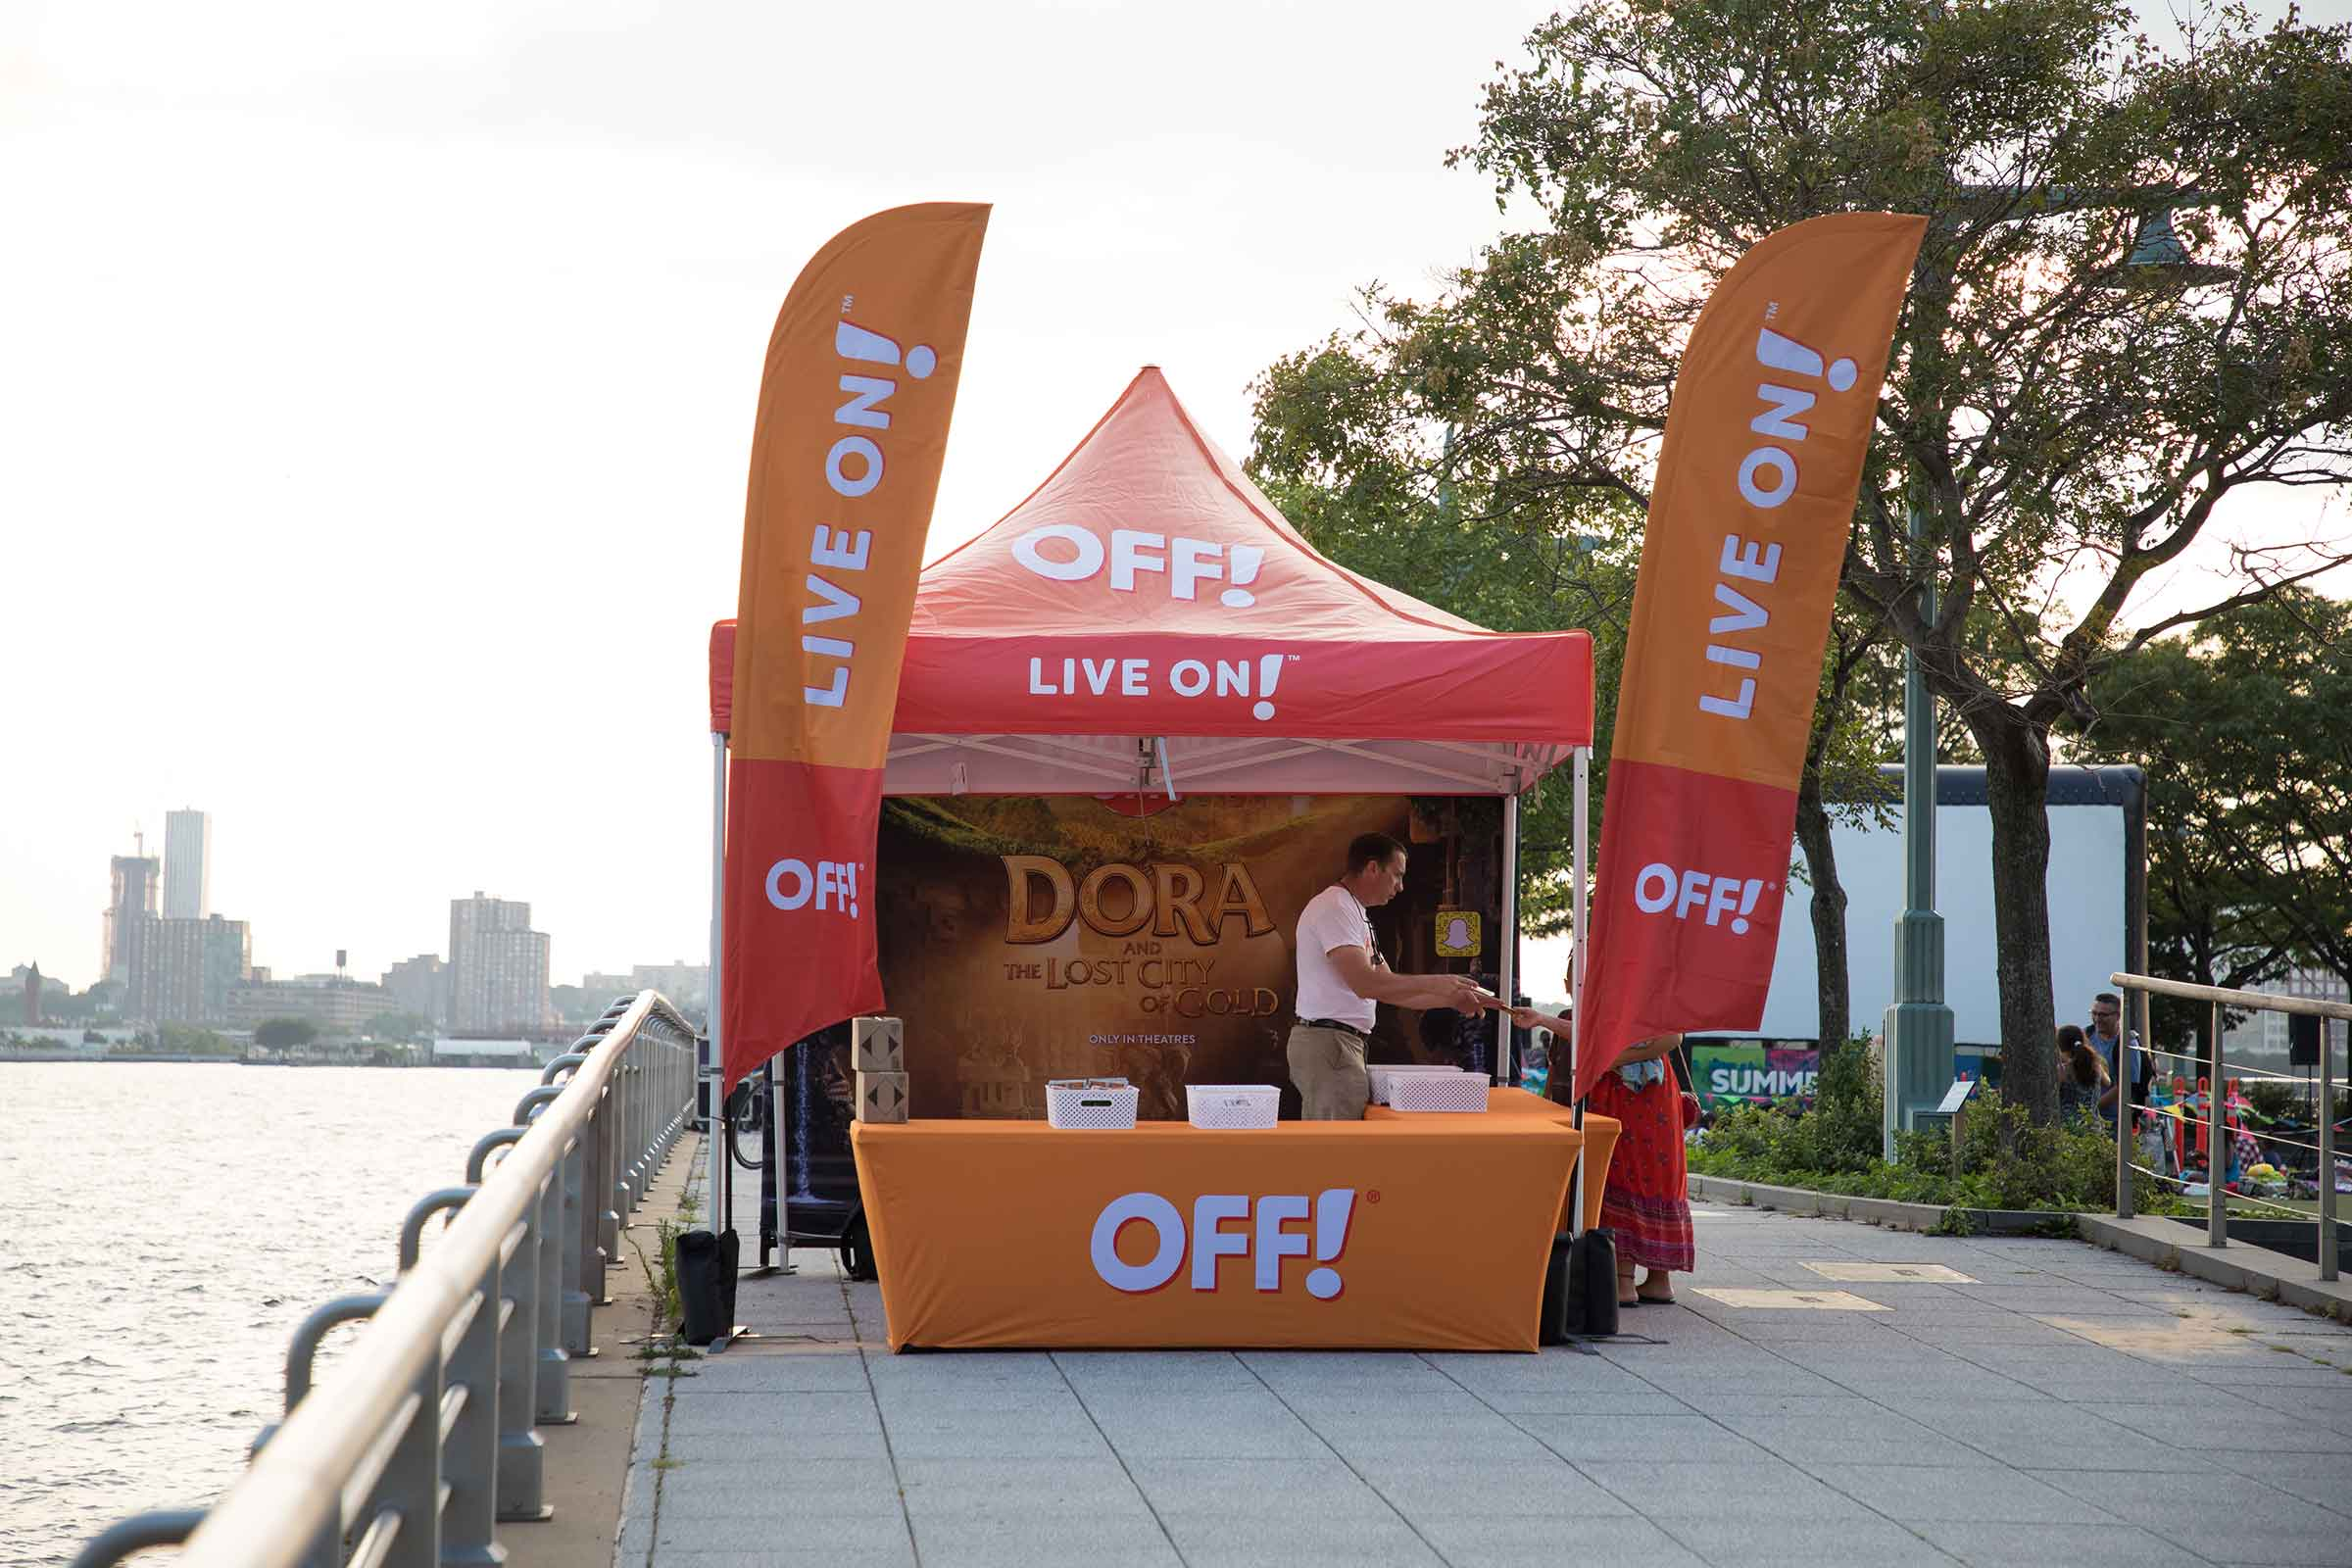 Off, provides some mosquito relief as a sponsor for Hudson River Park